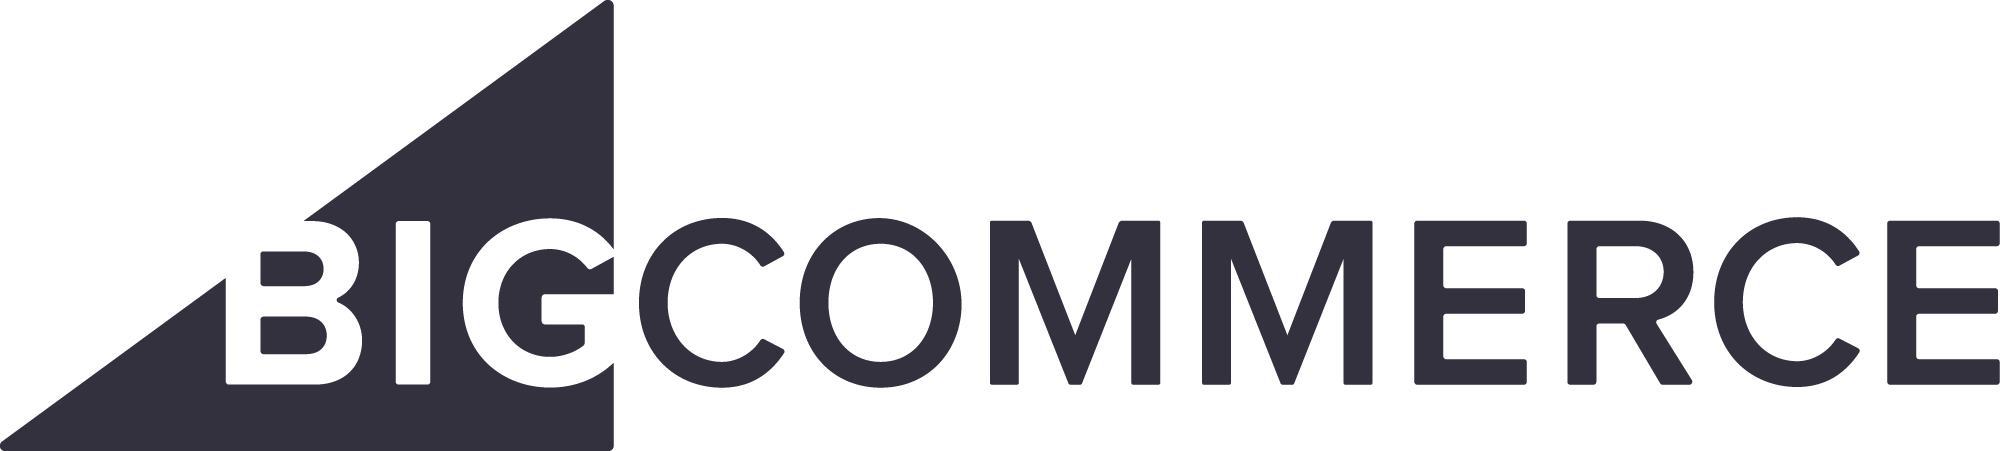 Magento To Bigcommerce Migration Services